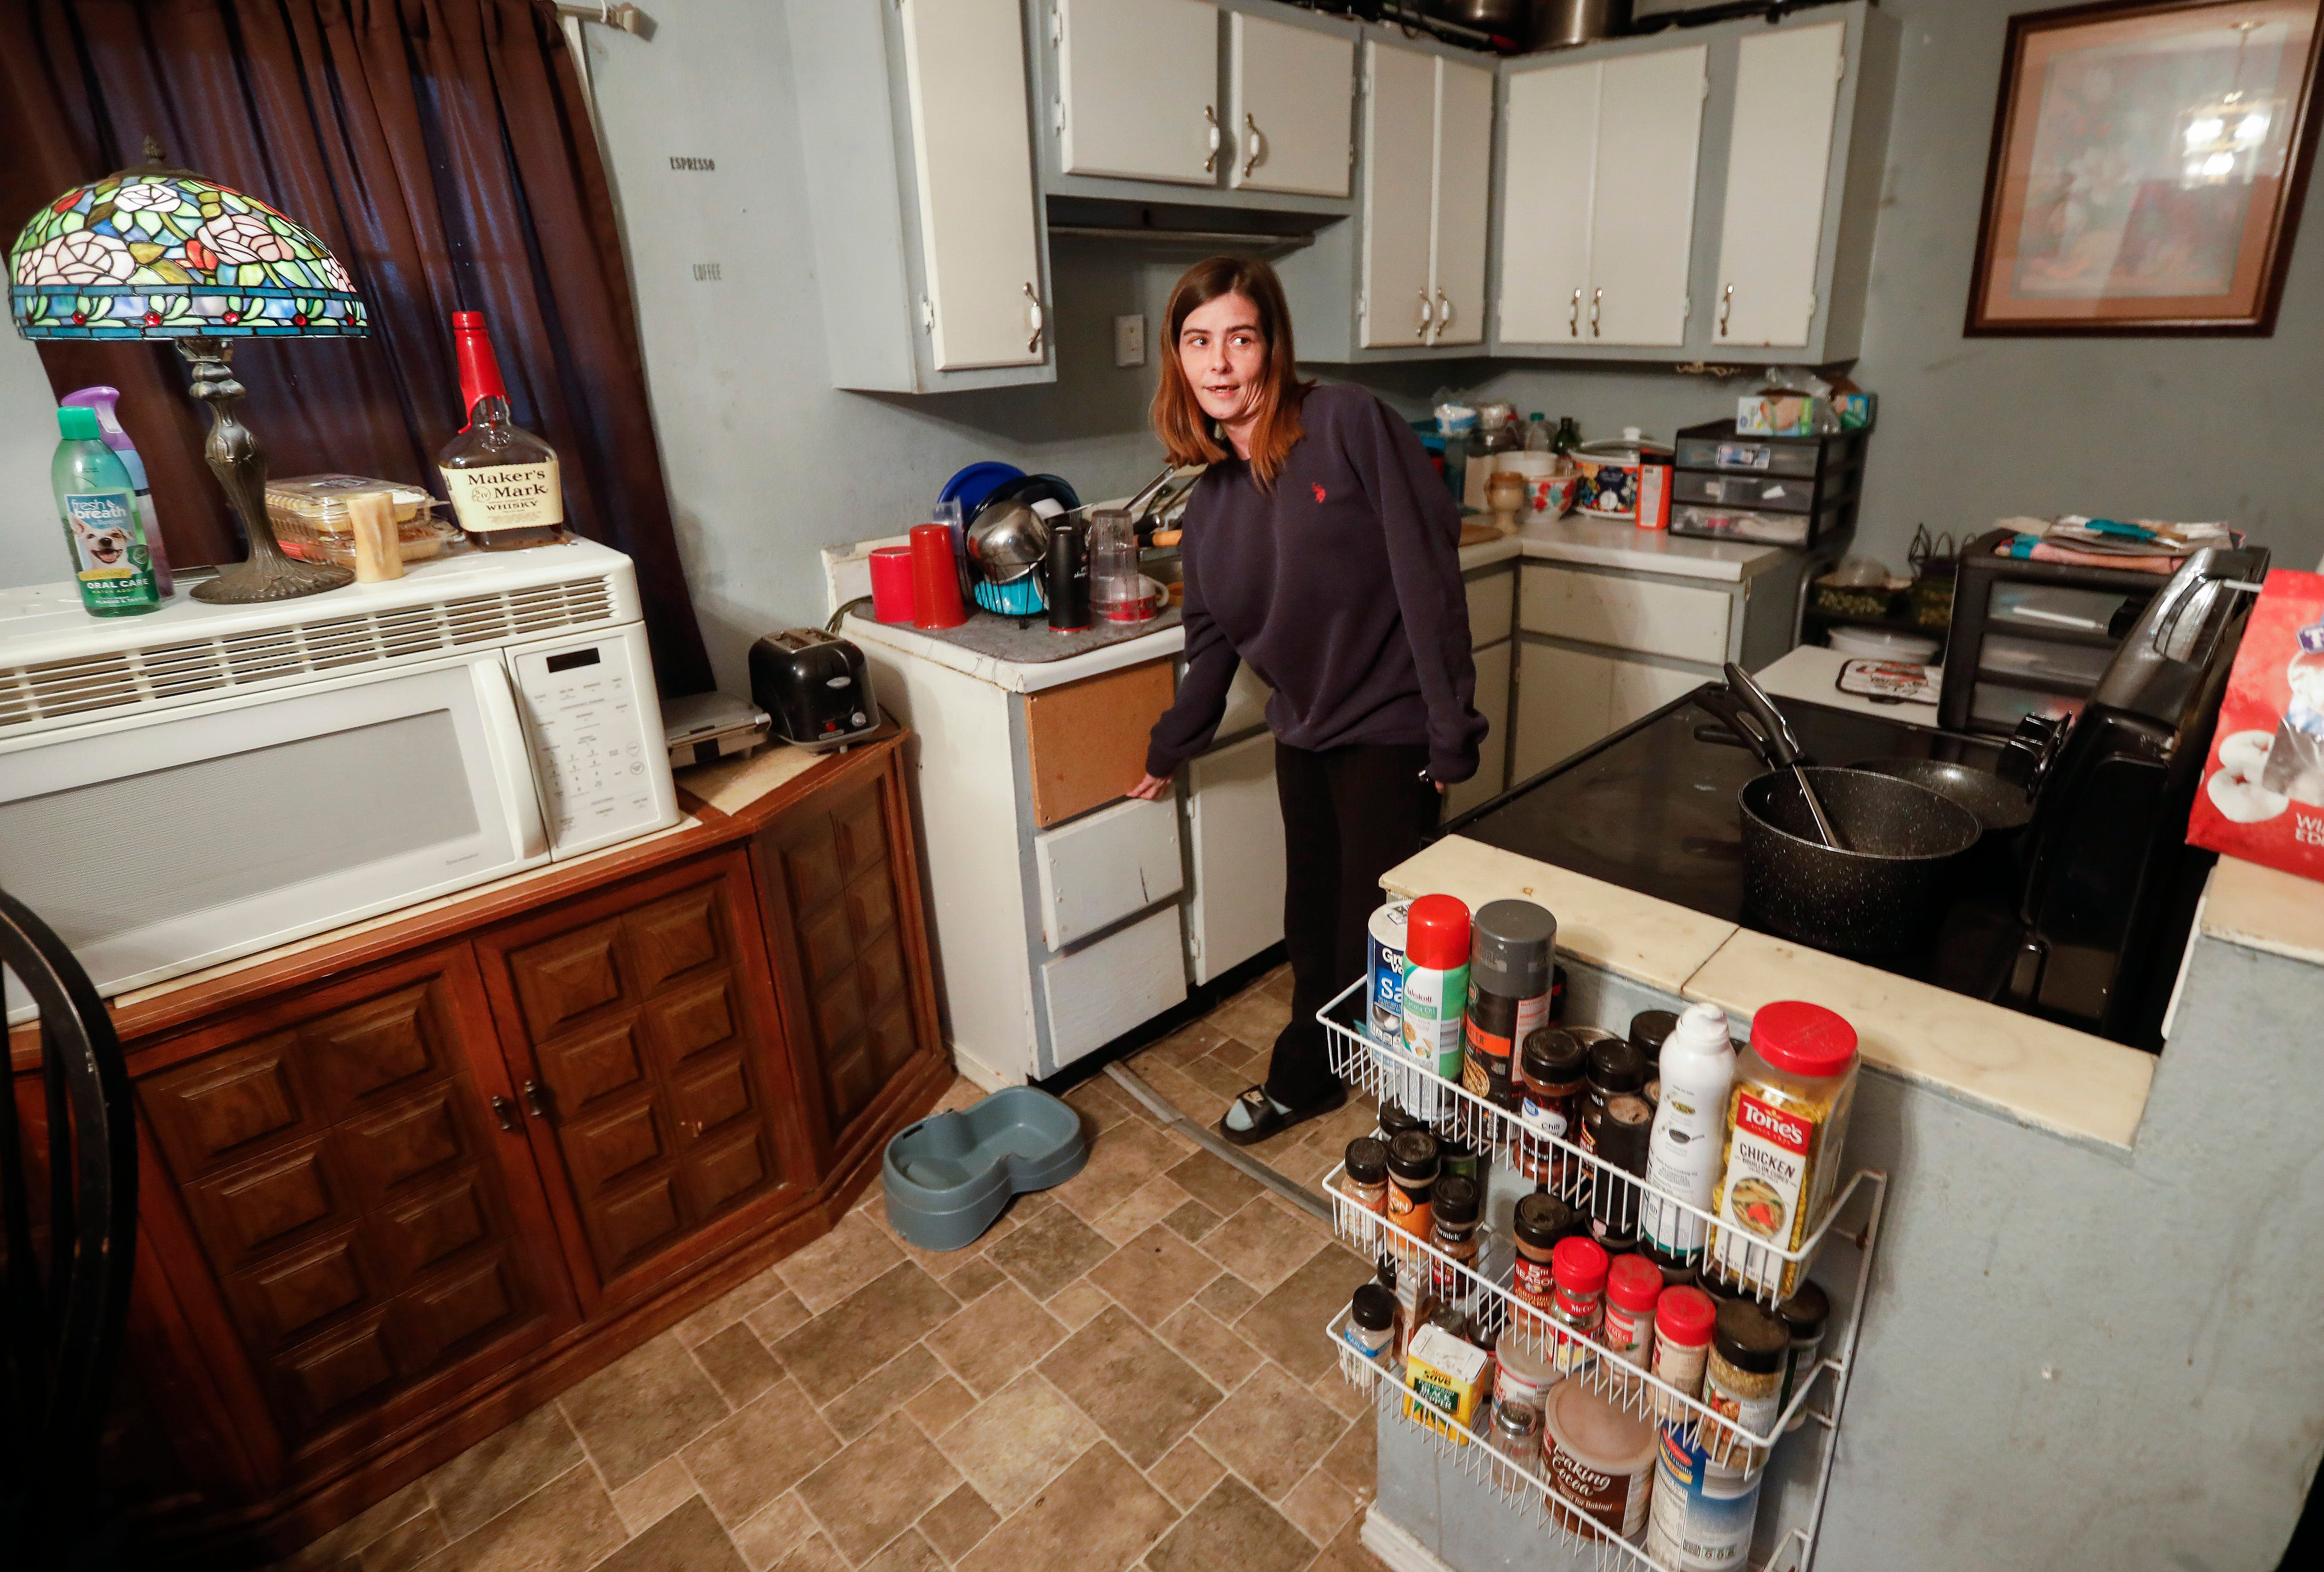 Kassandra Moore talks about the problems they have tried to fix in the home they are renting from Chris Gatley. They were recently informed that the property was being foreclosed on and that they would have to leave.